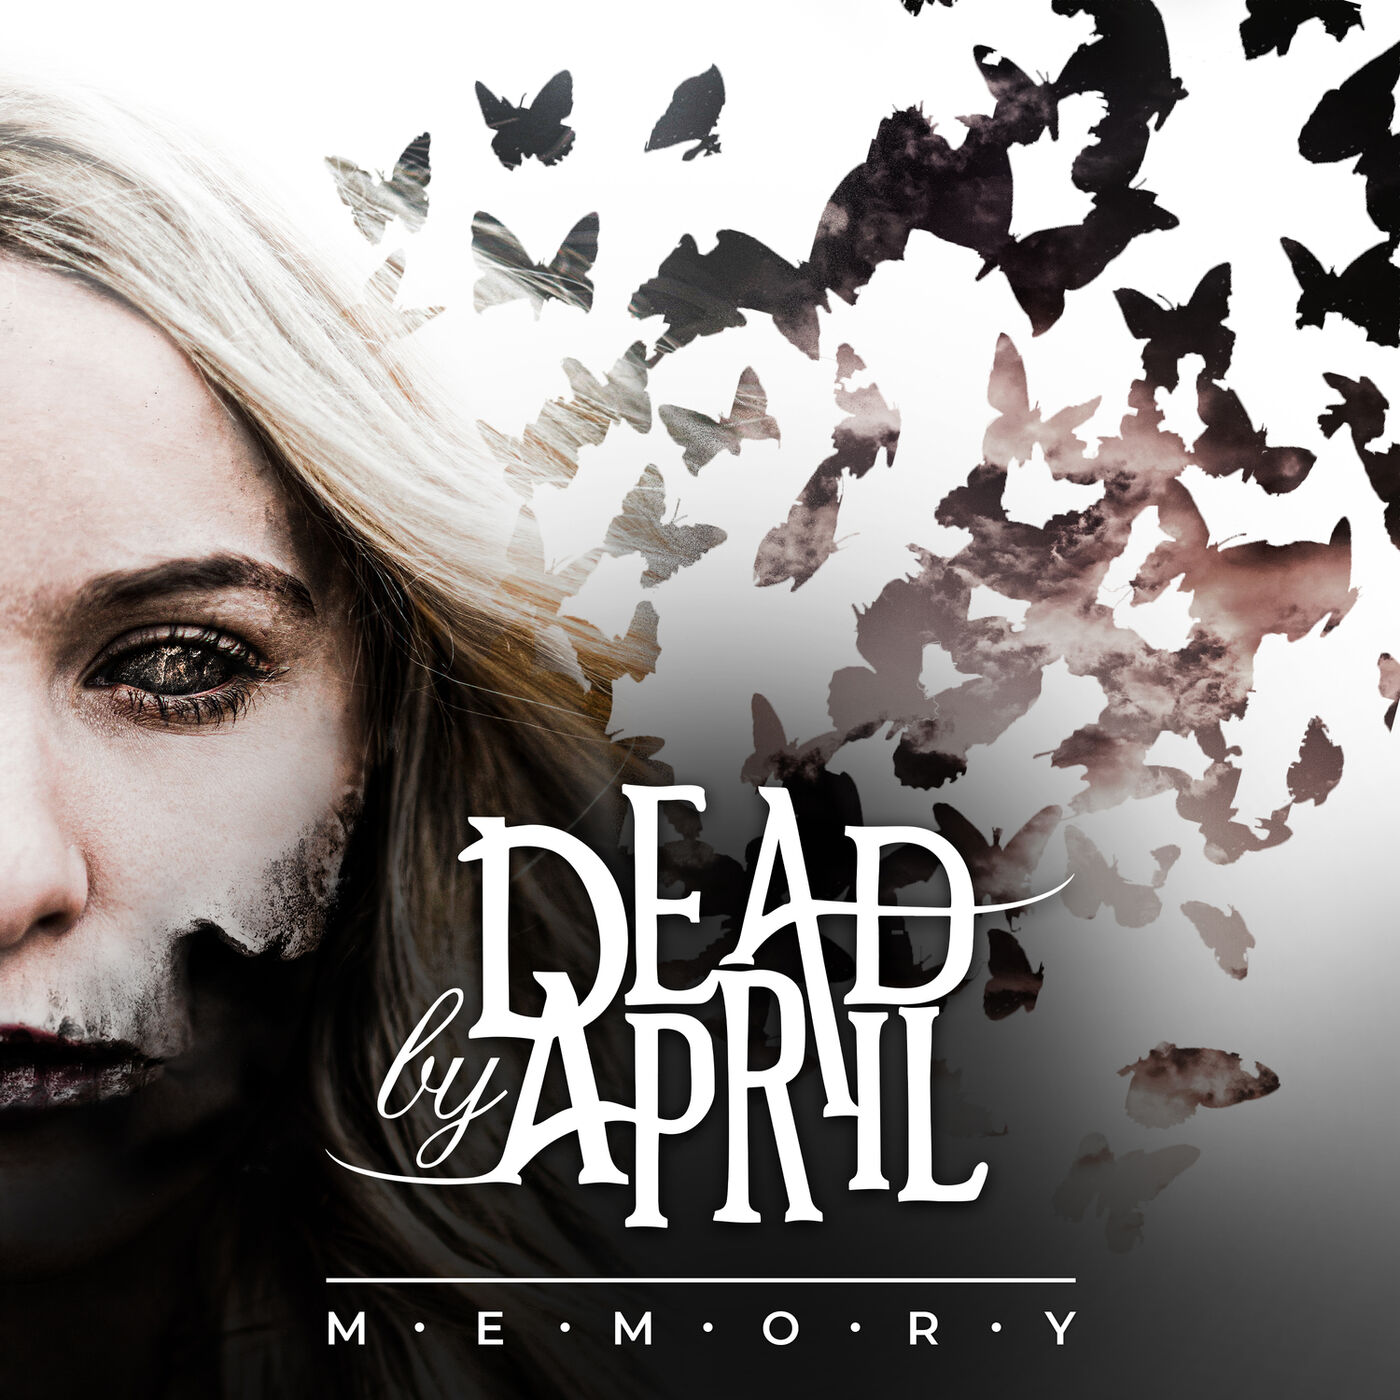 Dead by April - Memory [single] (2020)